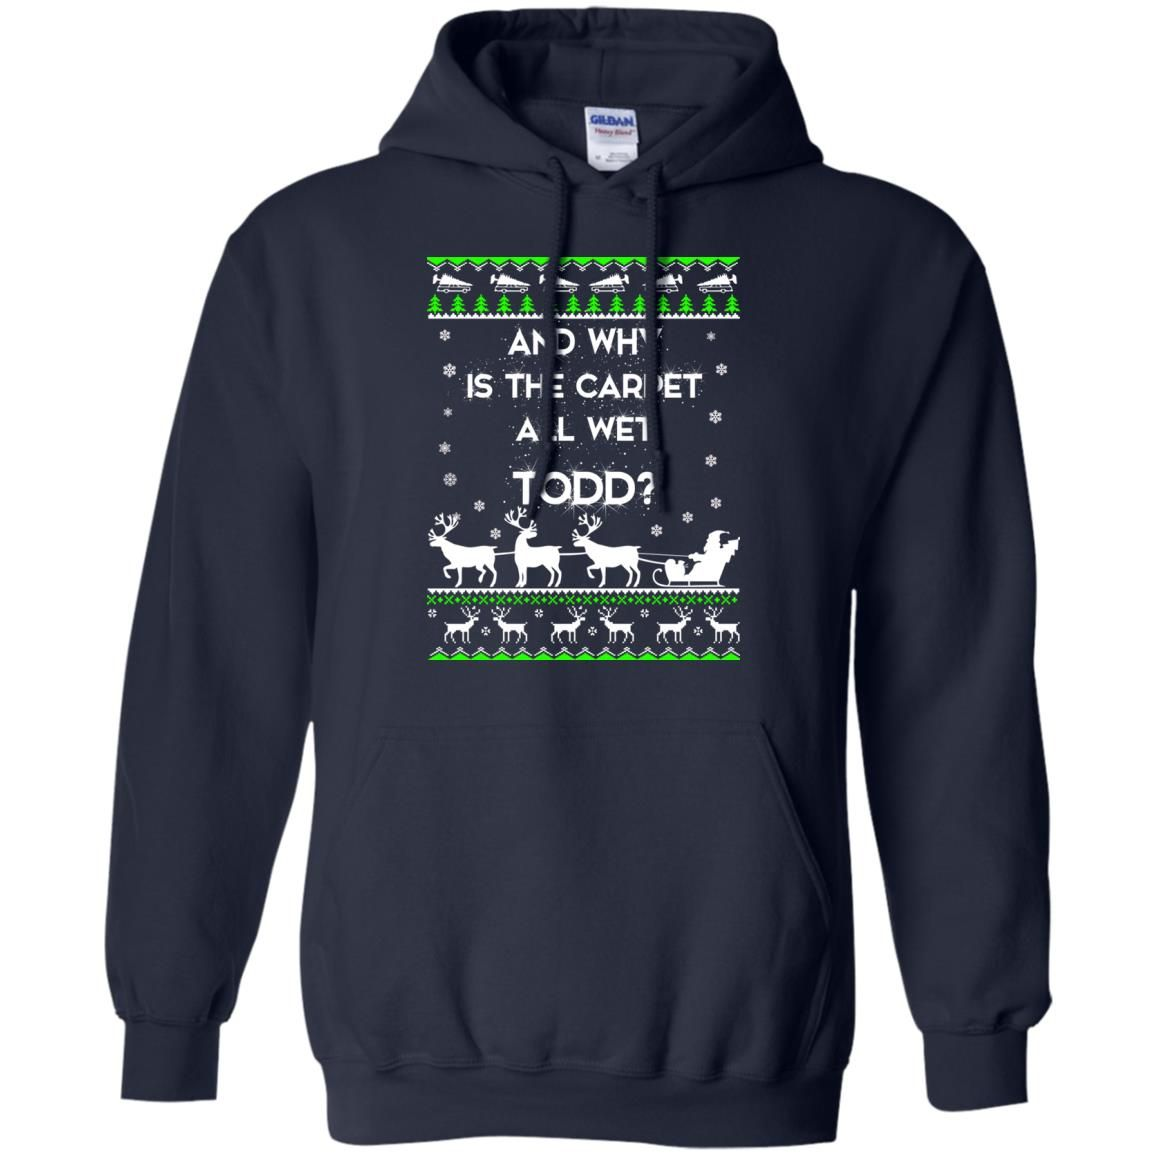 image 1605 - Christmas Vacation: And why is carpet all wet TODD ulgy sweater, hoodie